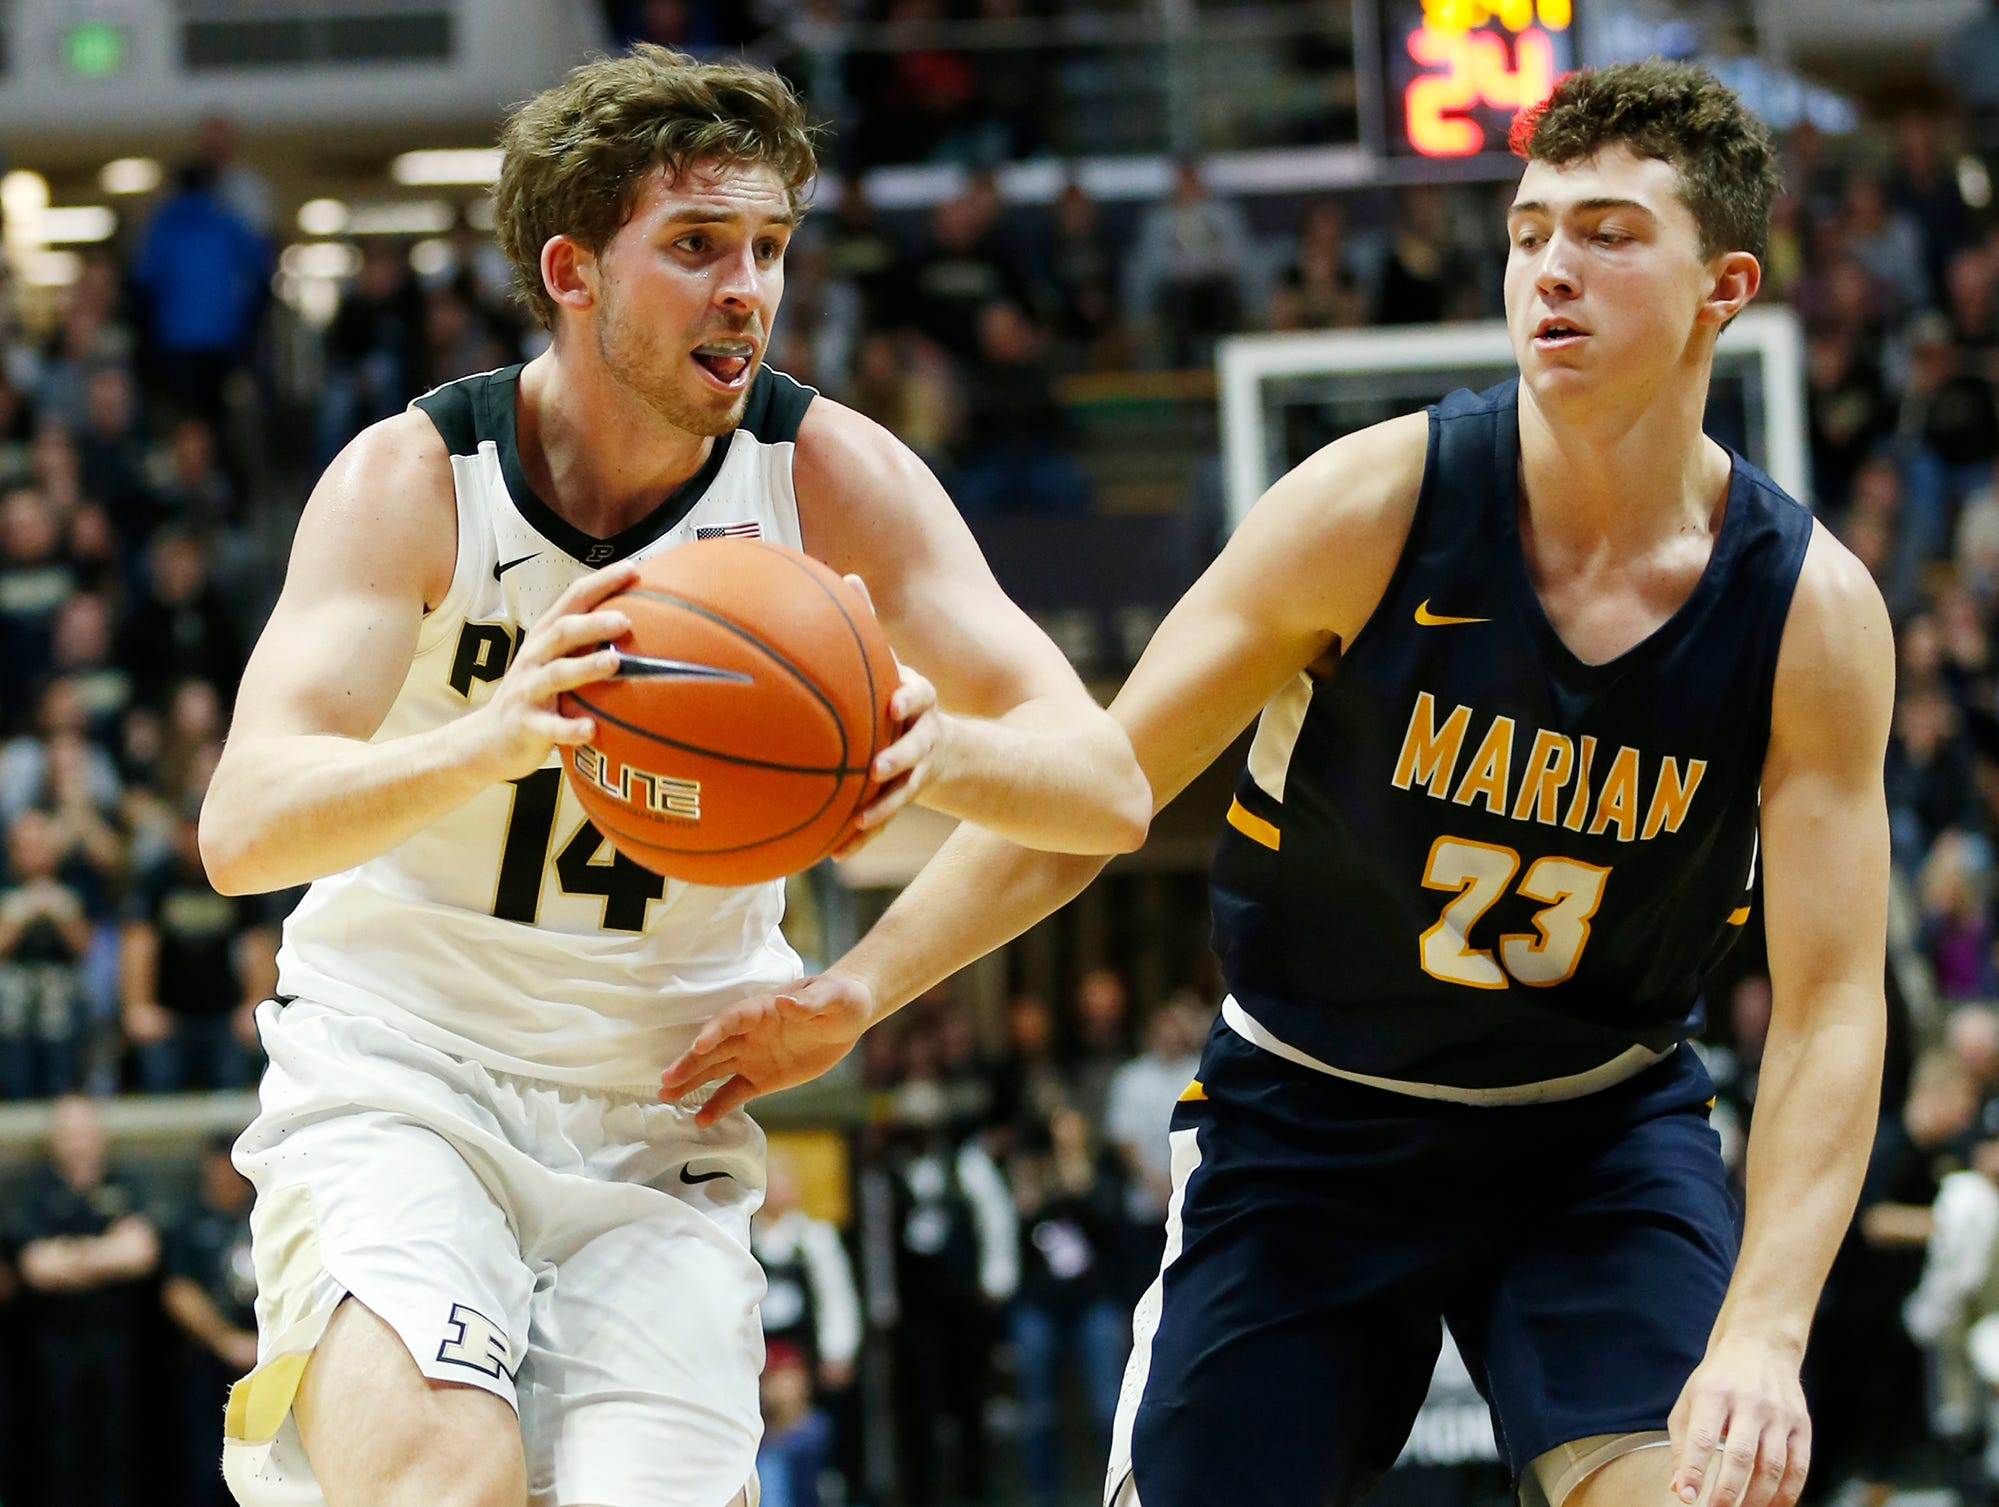 Ryan Cline of Purdue with a drive to the basket against Luke Gohmann of Marian University Thursday, November 1, 2018, at Mackey Arena. Purdue defeated Marian University 75-56.